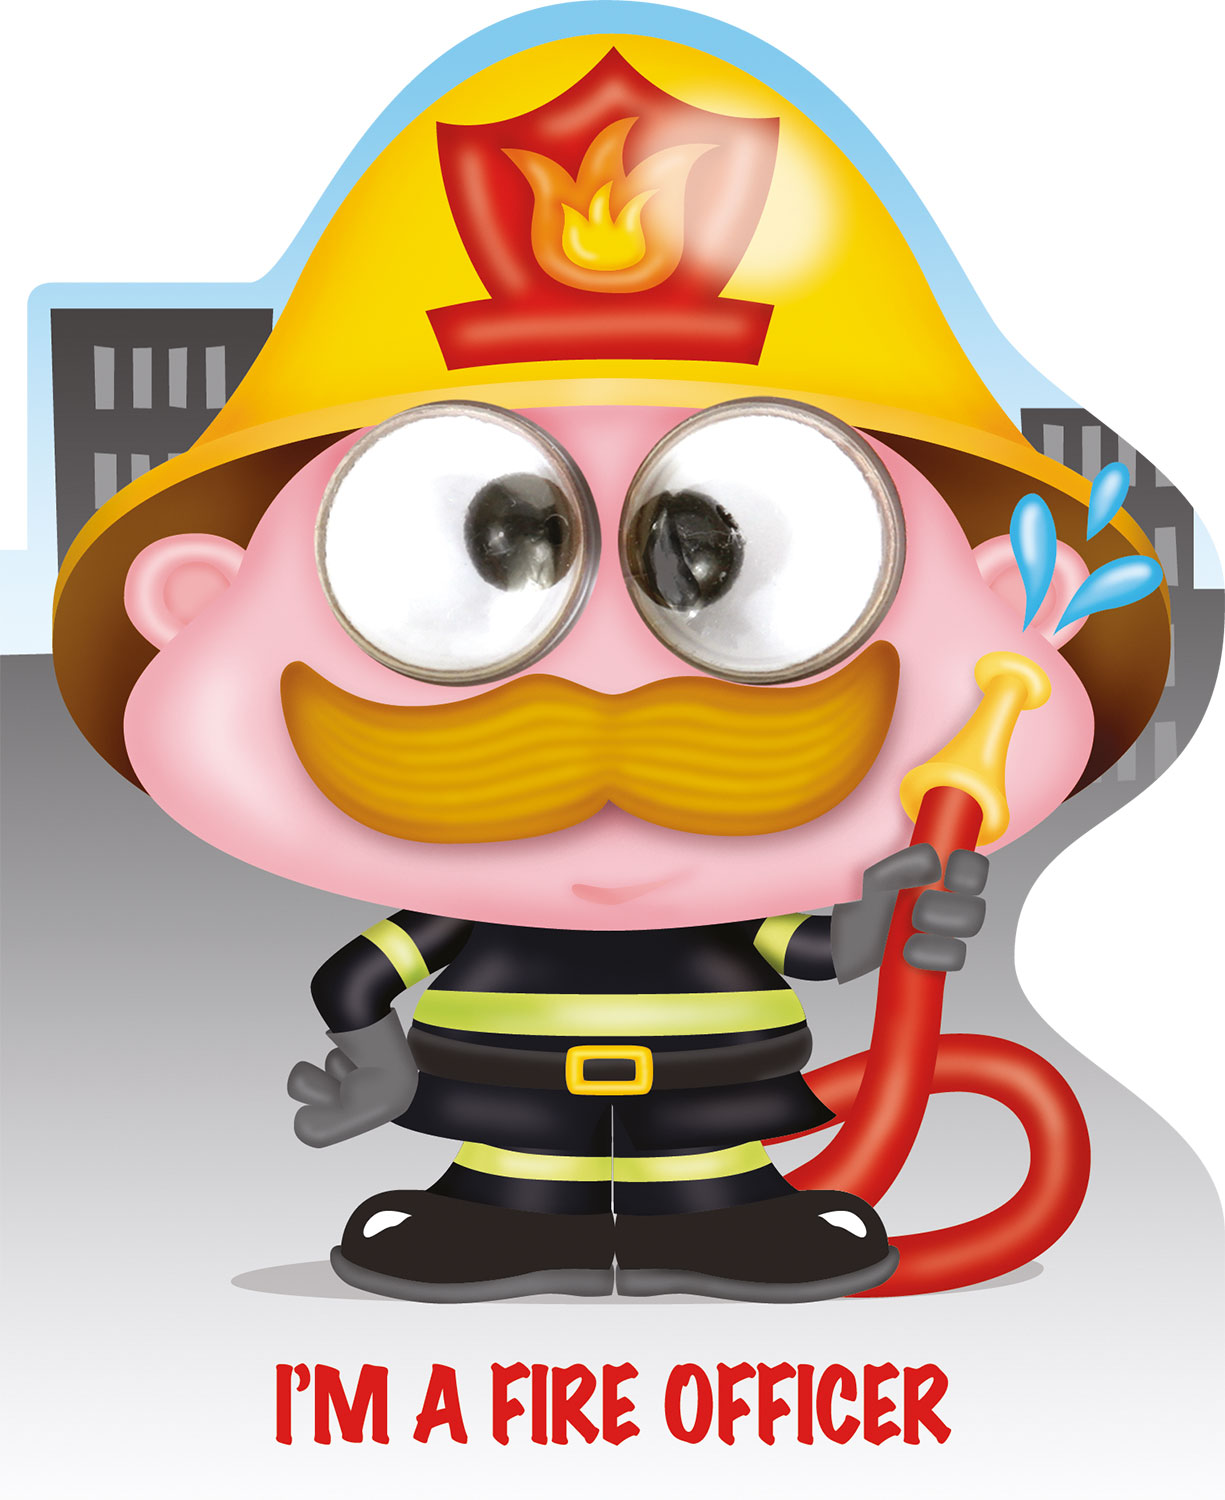 I'M A FIRE OFFICER